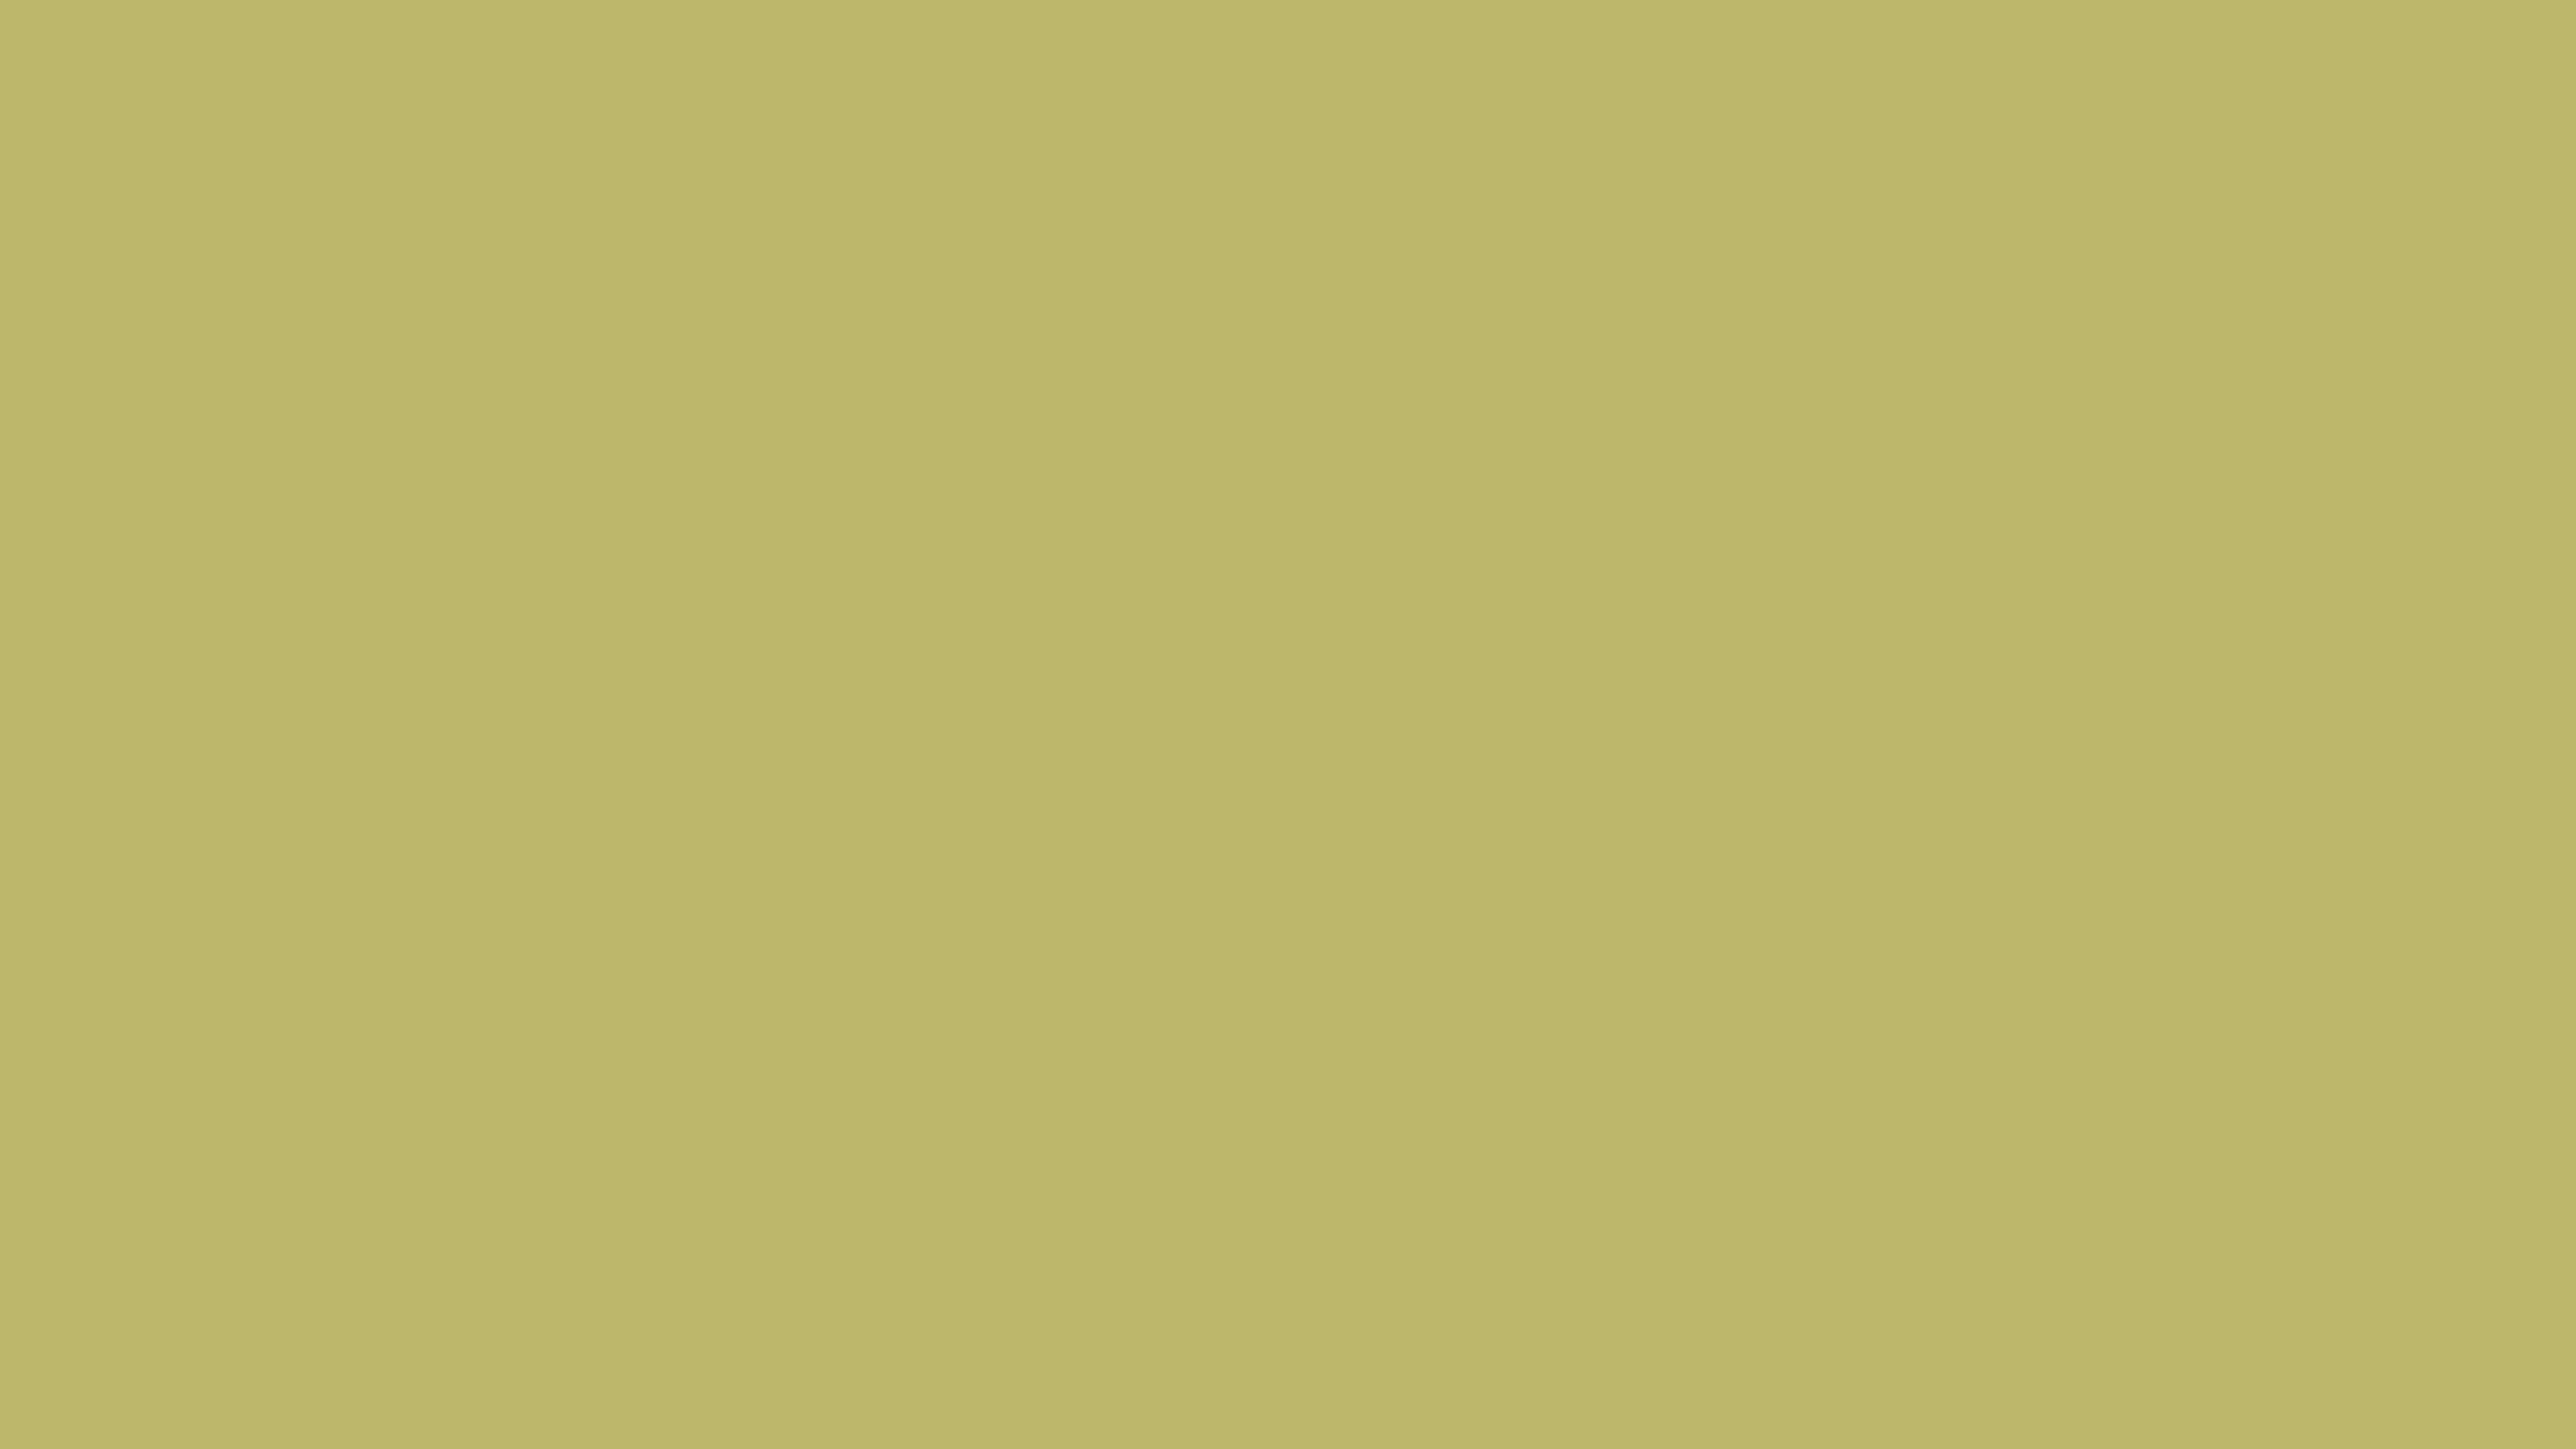 5120x2880 Dark Khaki Solid Color Background